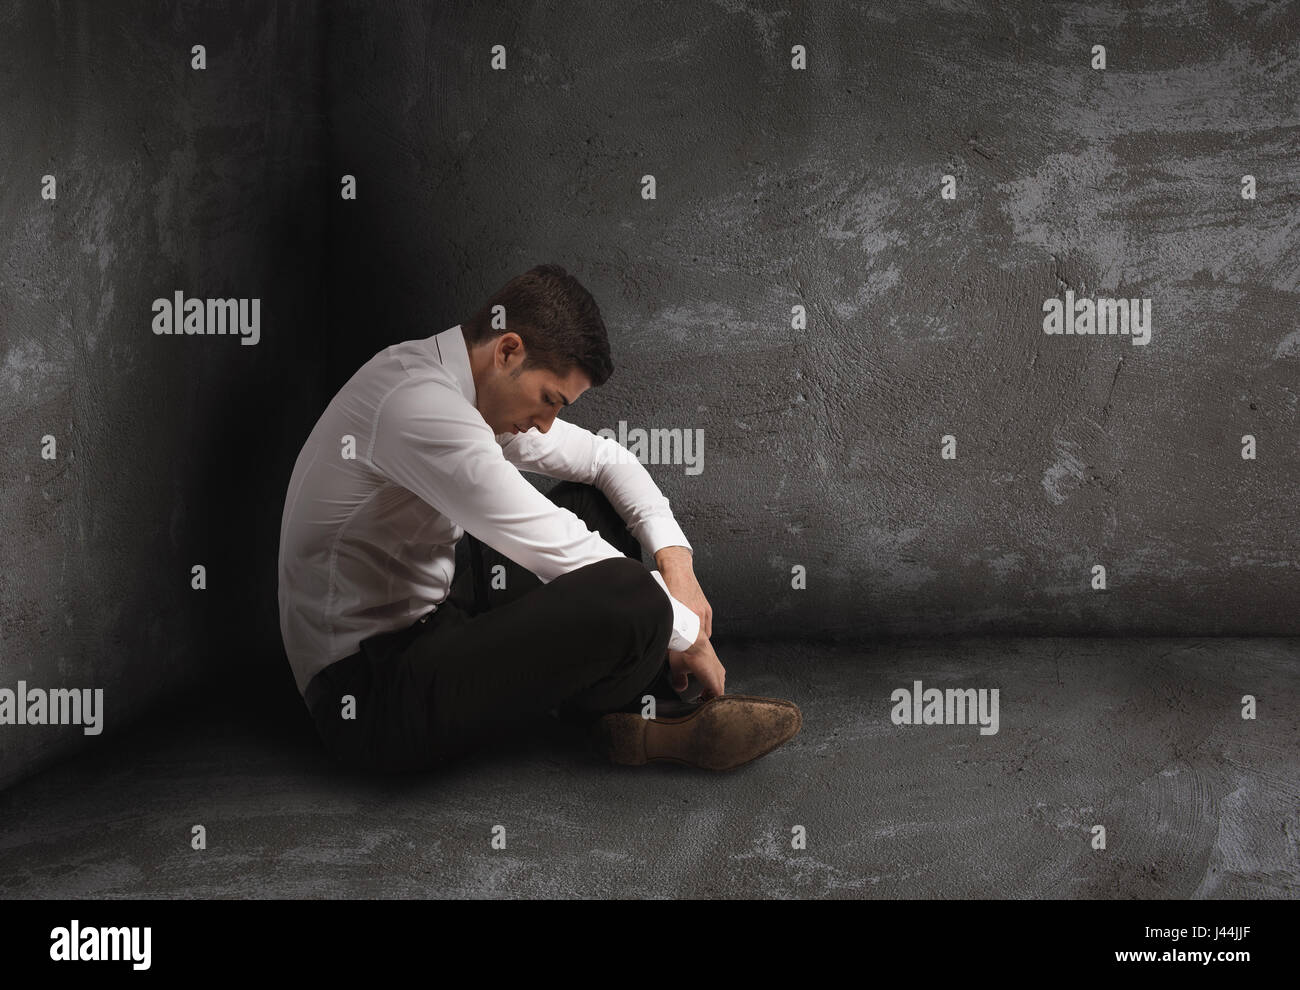 Alone desperate businessman. solitude and failure concept - Stock Image